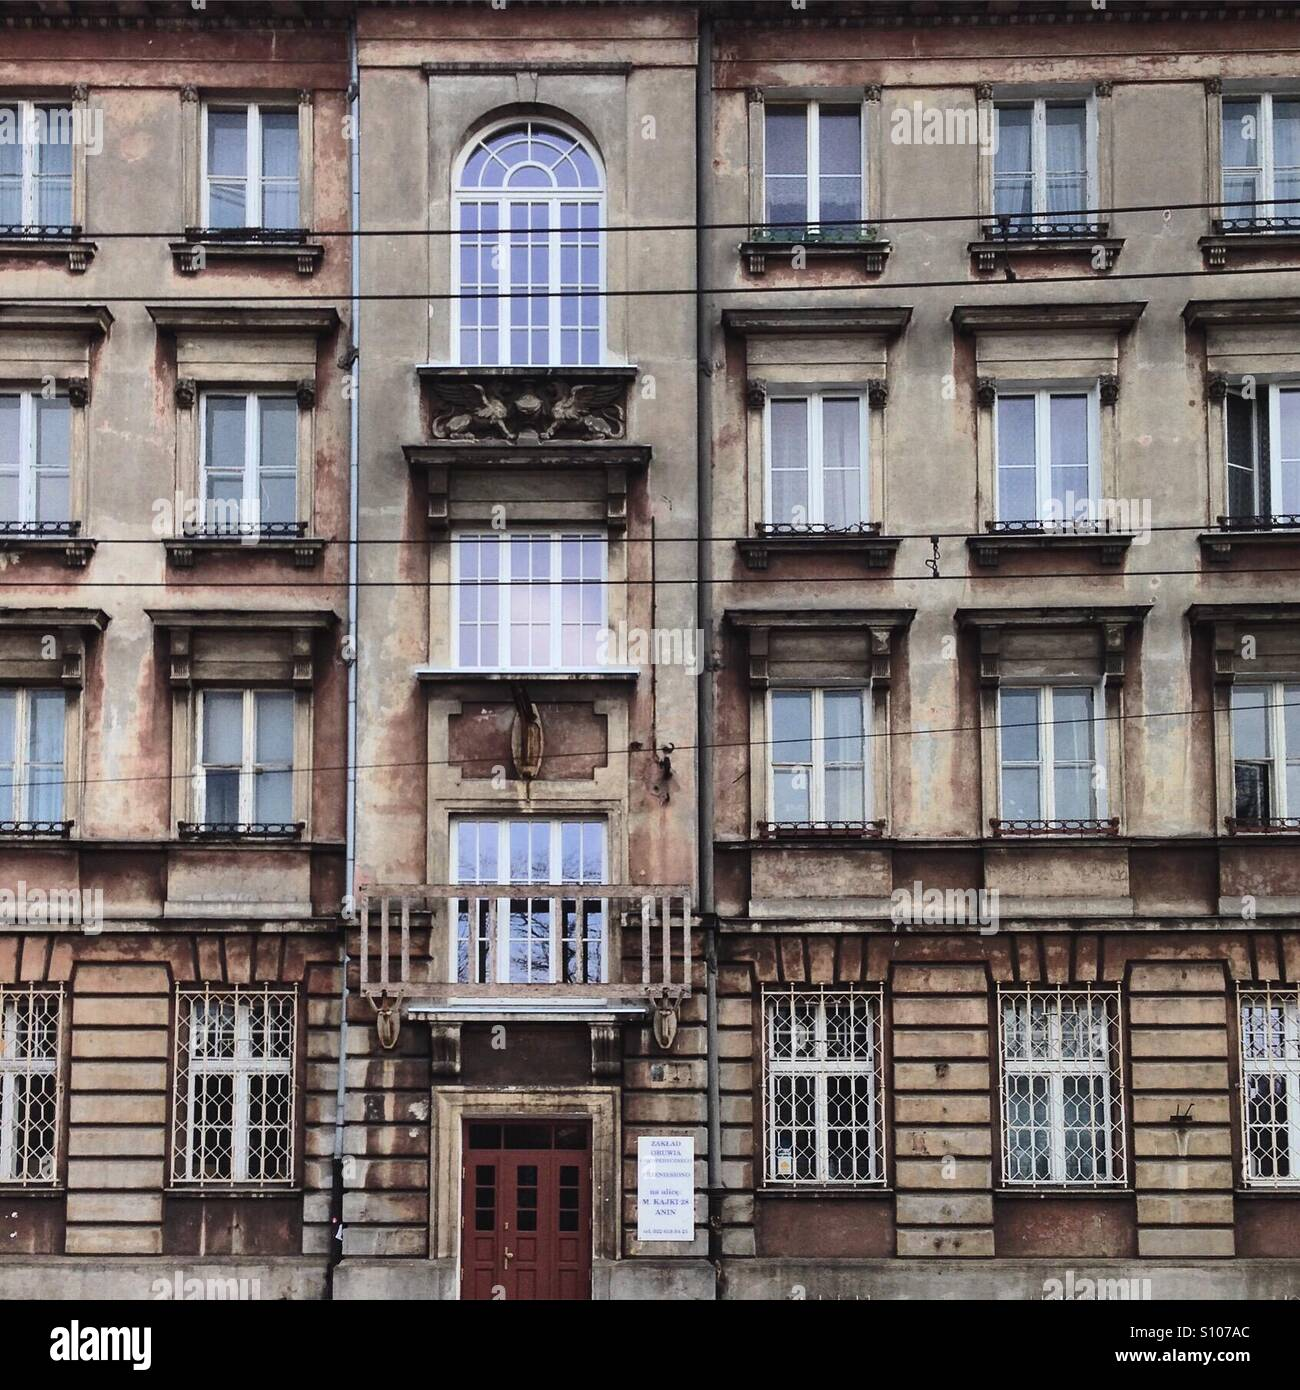 The facade of a building in Praga district of Warsaw - Stock Image